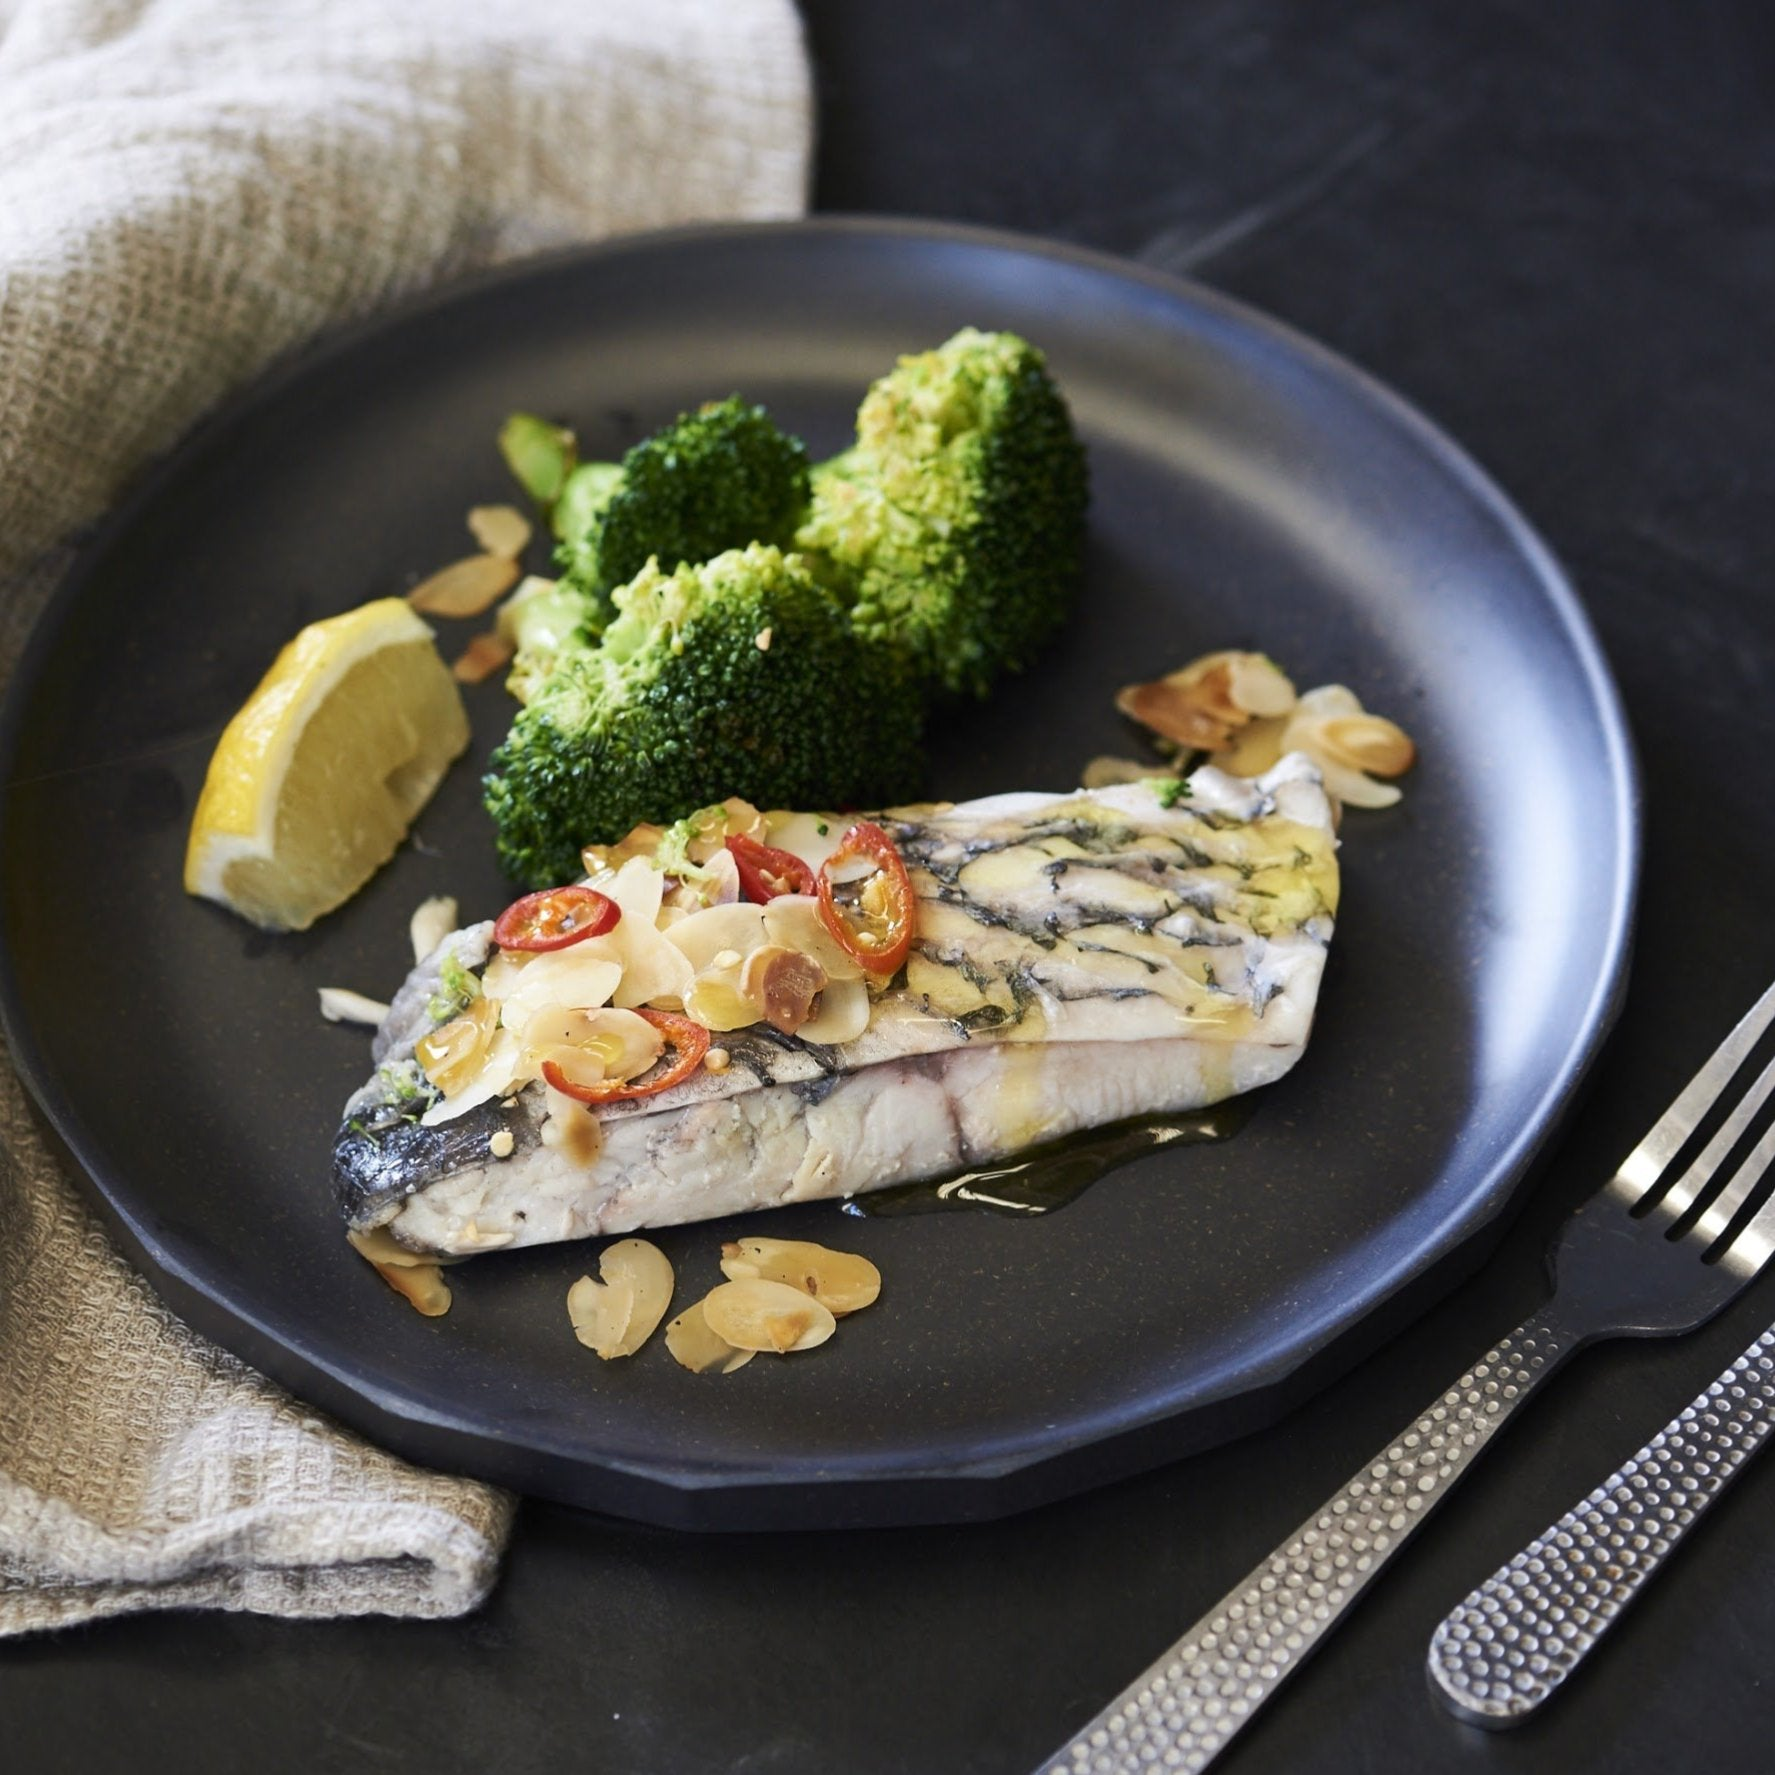 Baked Barramundi Fillet with Spicy Broccoli & Spicy Almonds